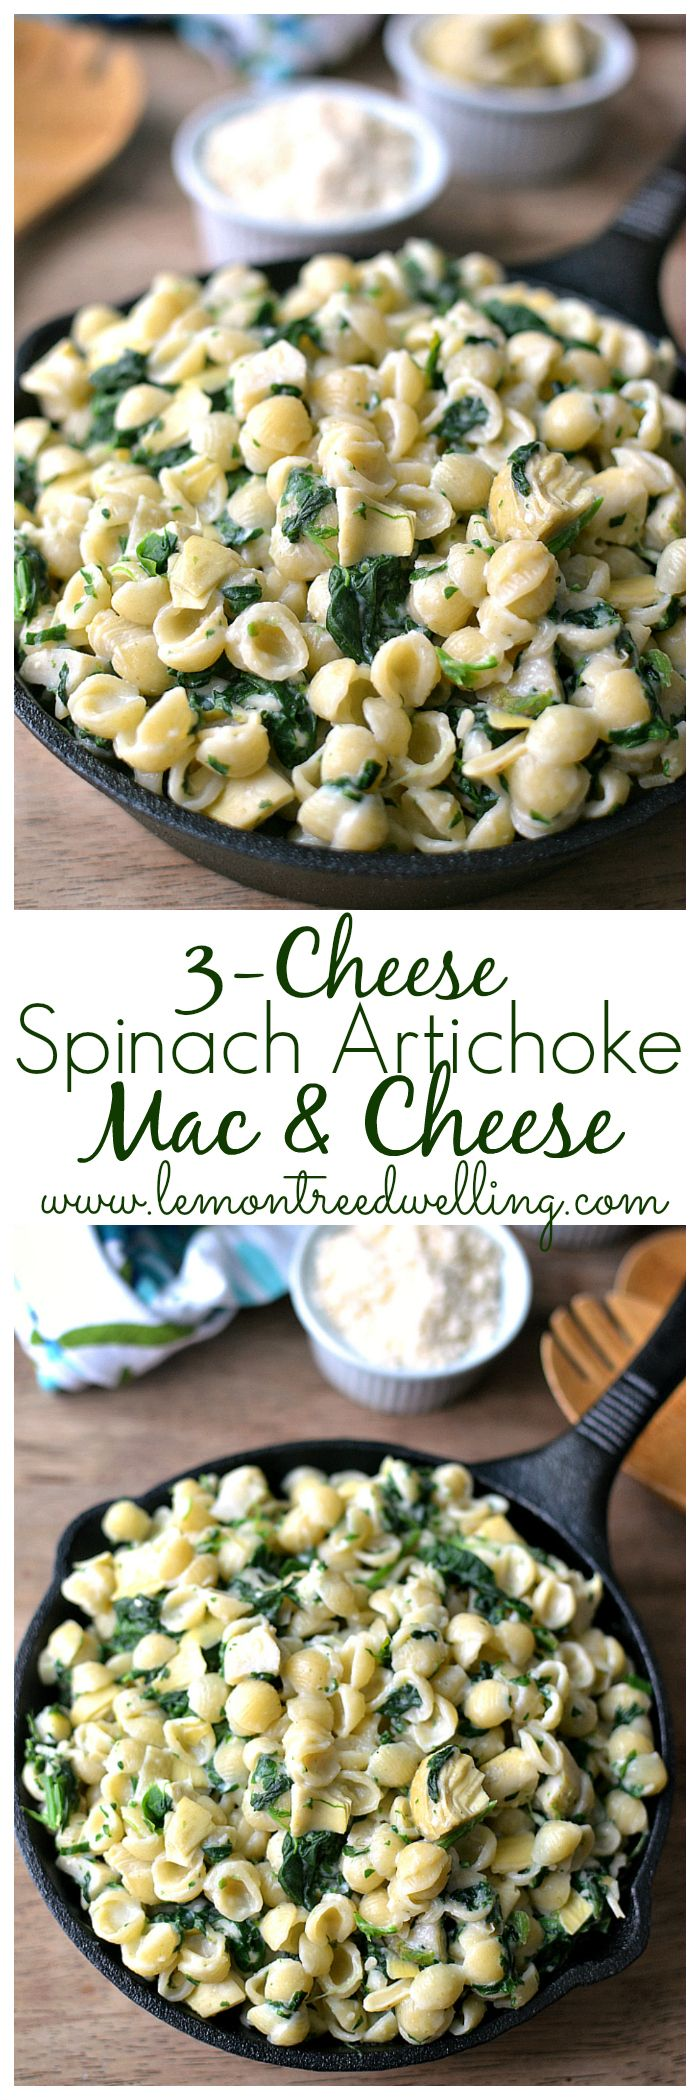 3-Cheese Spinach Artichoke Mac & Cheese